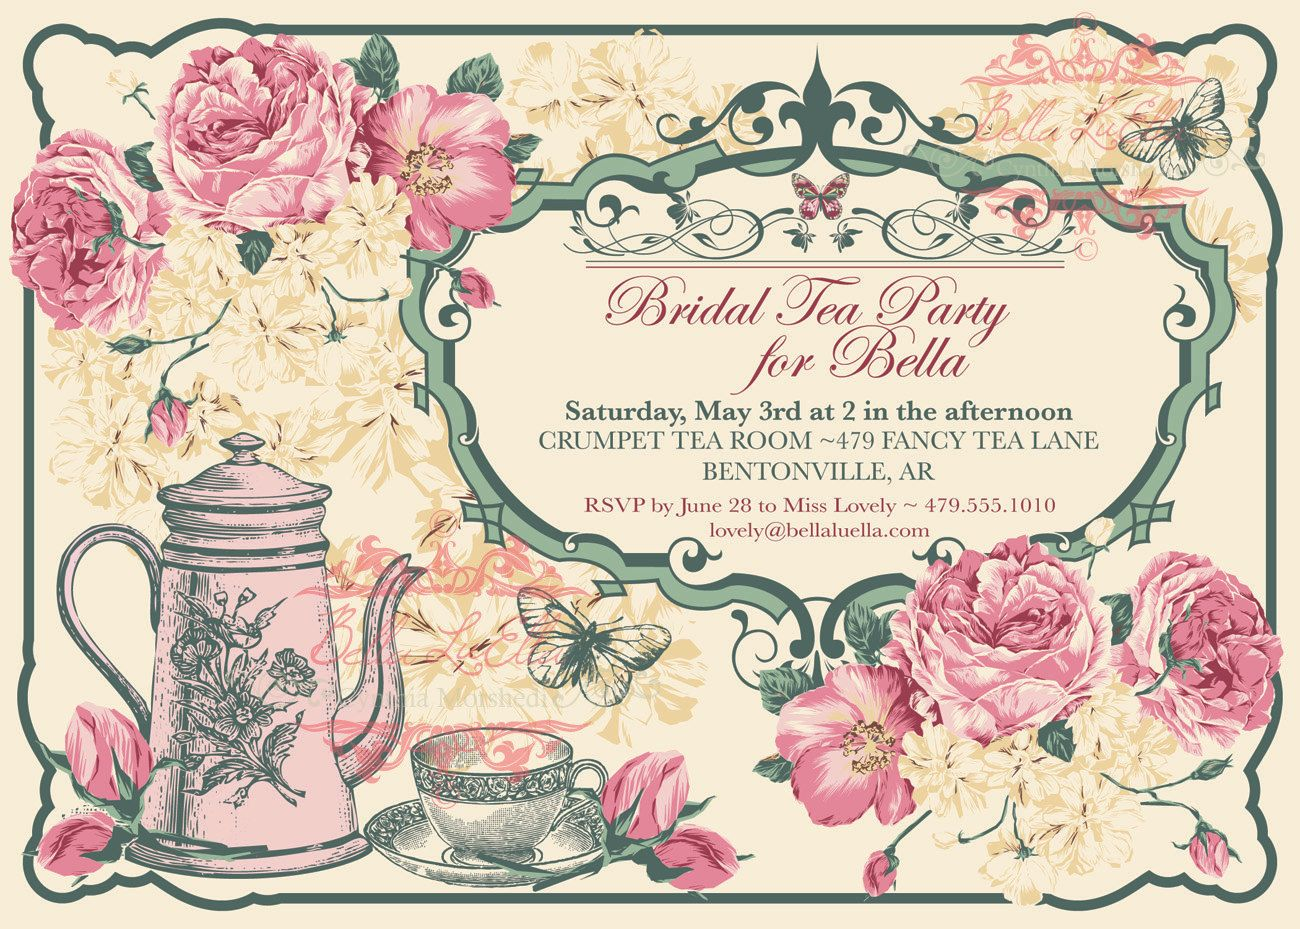 Kitchen Tea Party Invitation Doc Invitations For A Tea Party 1000 Ideas About Tea Party